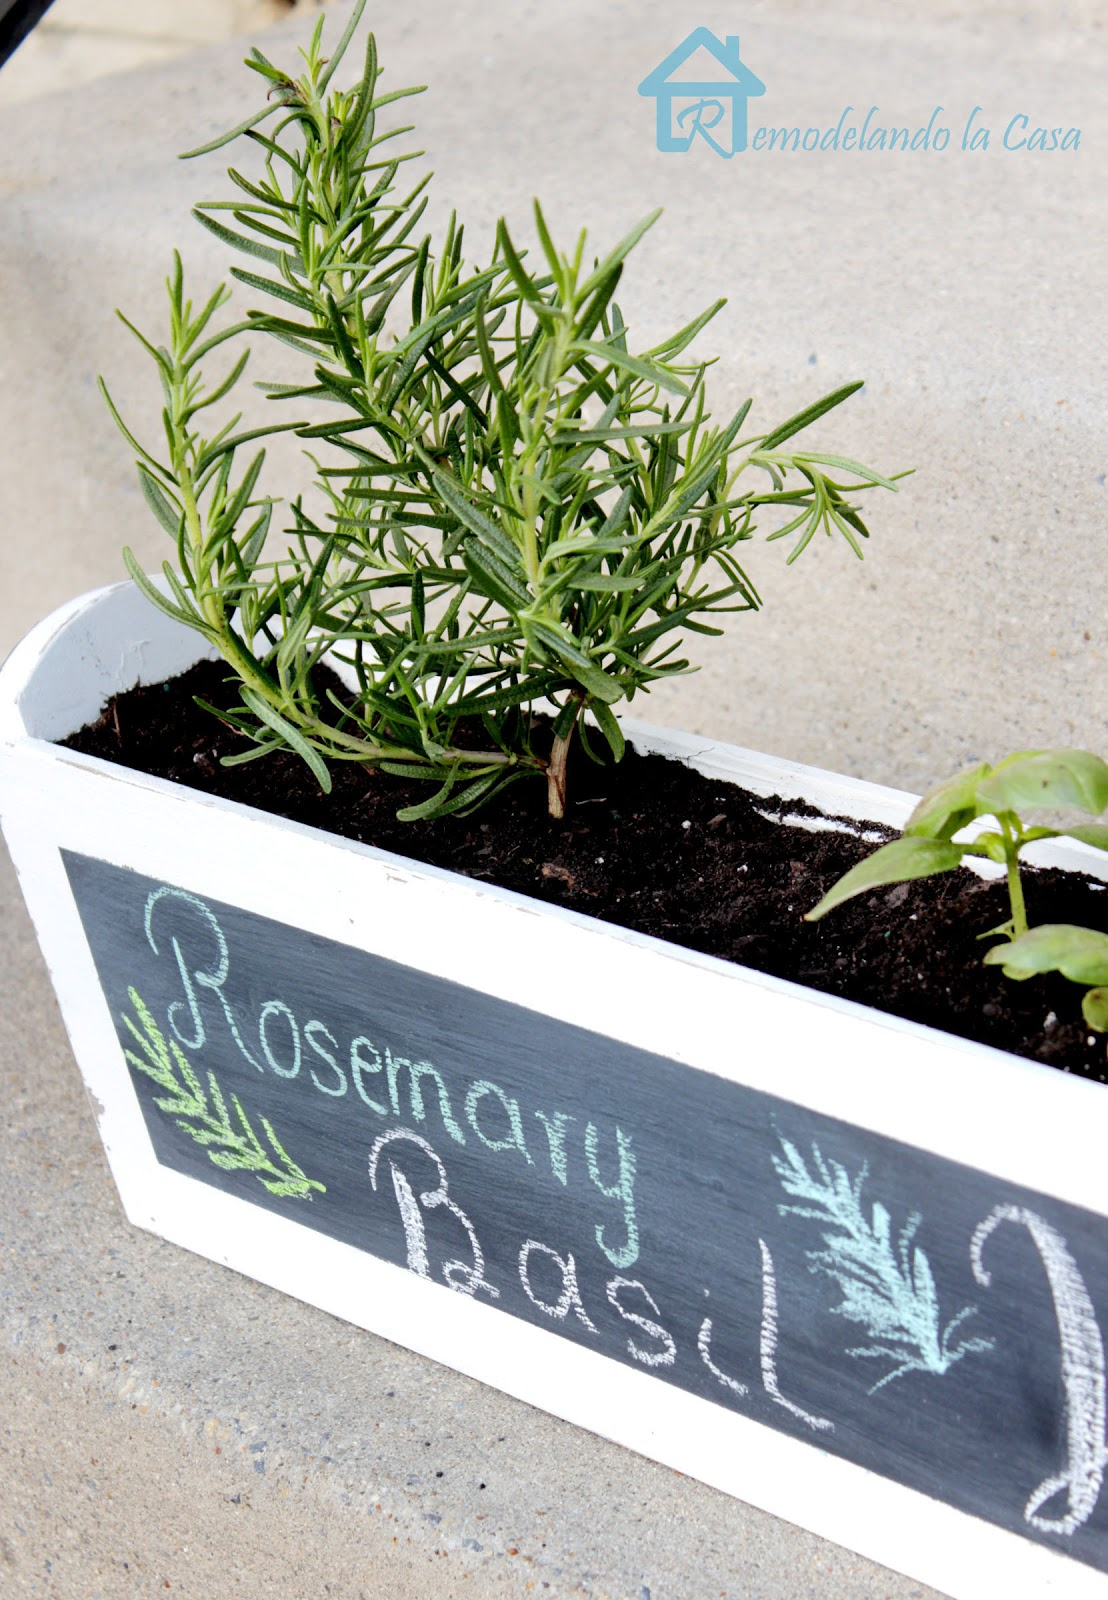 Build your own herb planter for your kitchen window ledge.